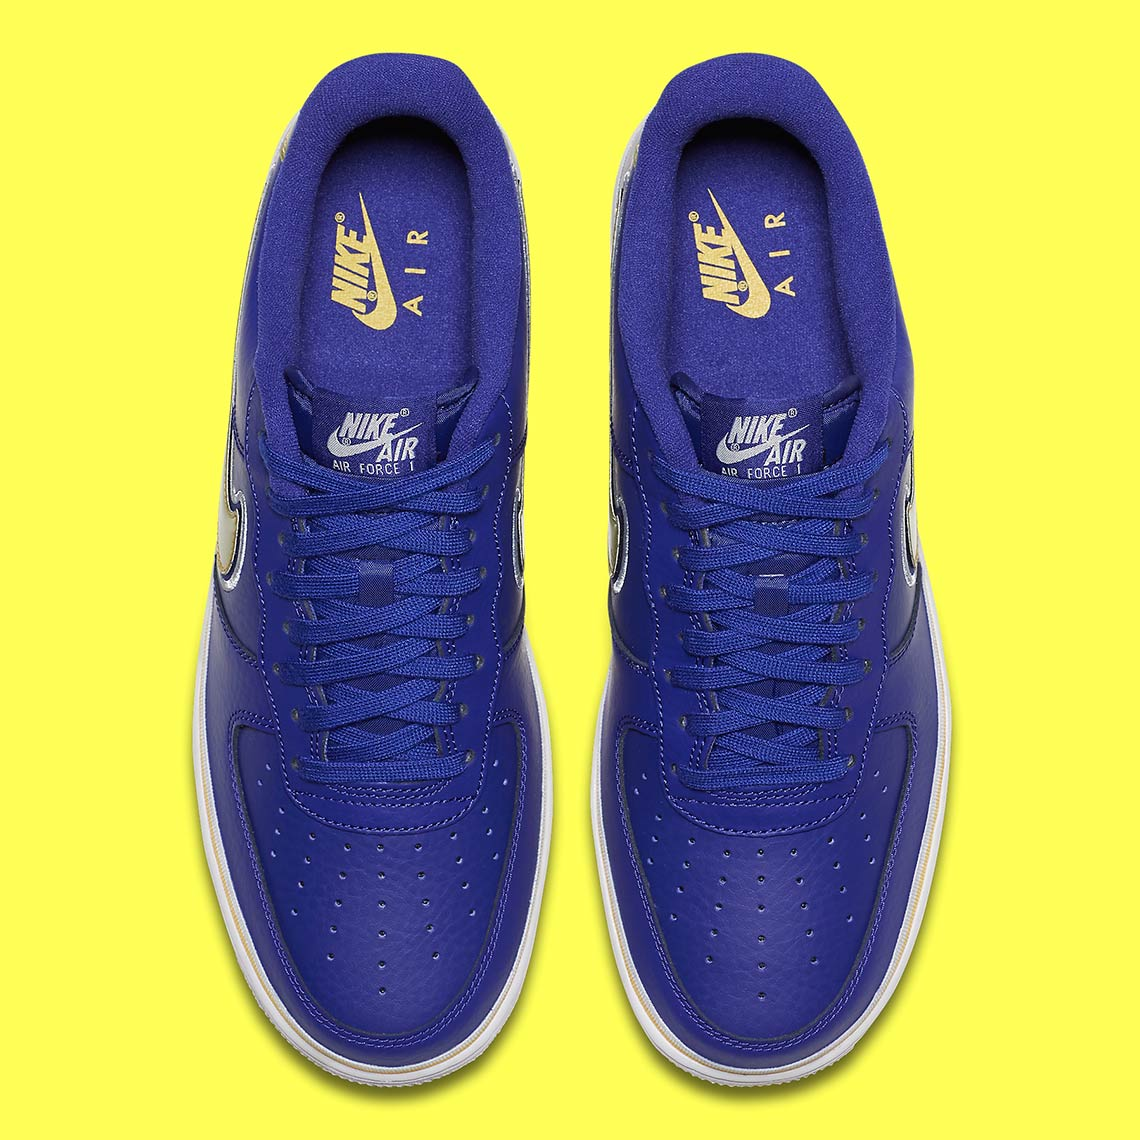 nike air force 1 low warriors aj7748 400 1 - Nike Air Force 1 Low Golden State Warriors